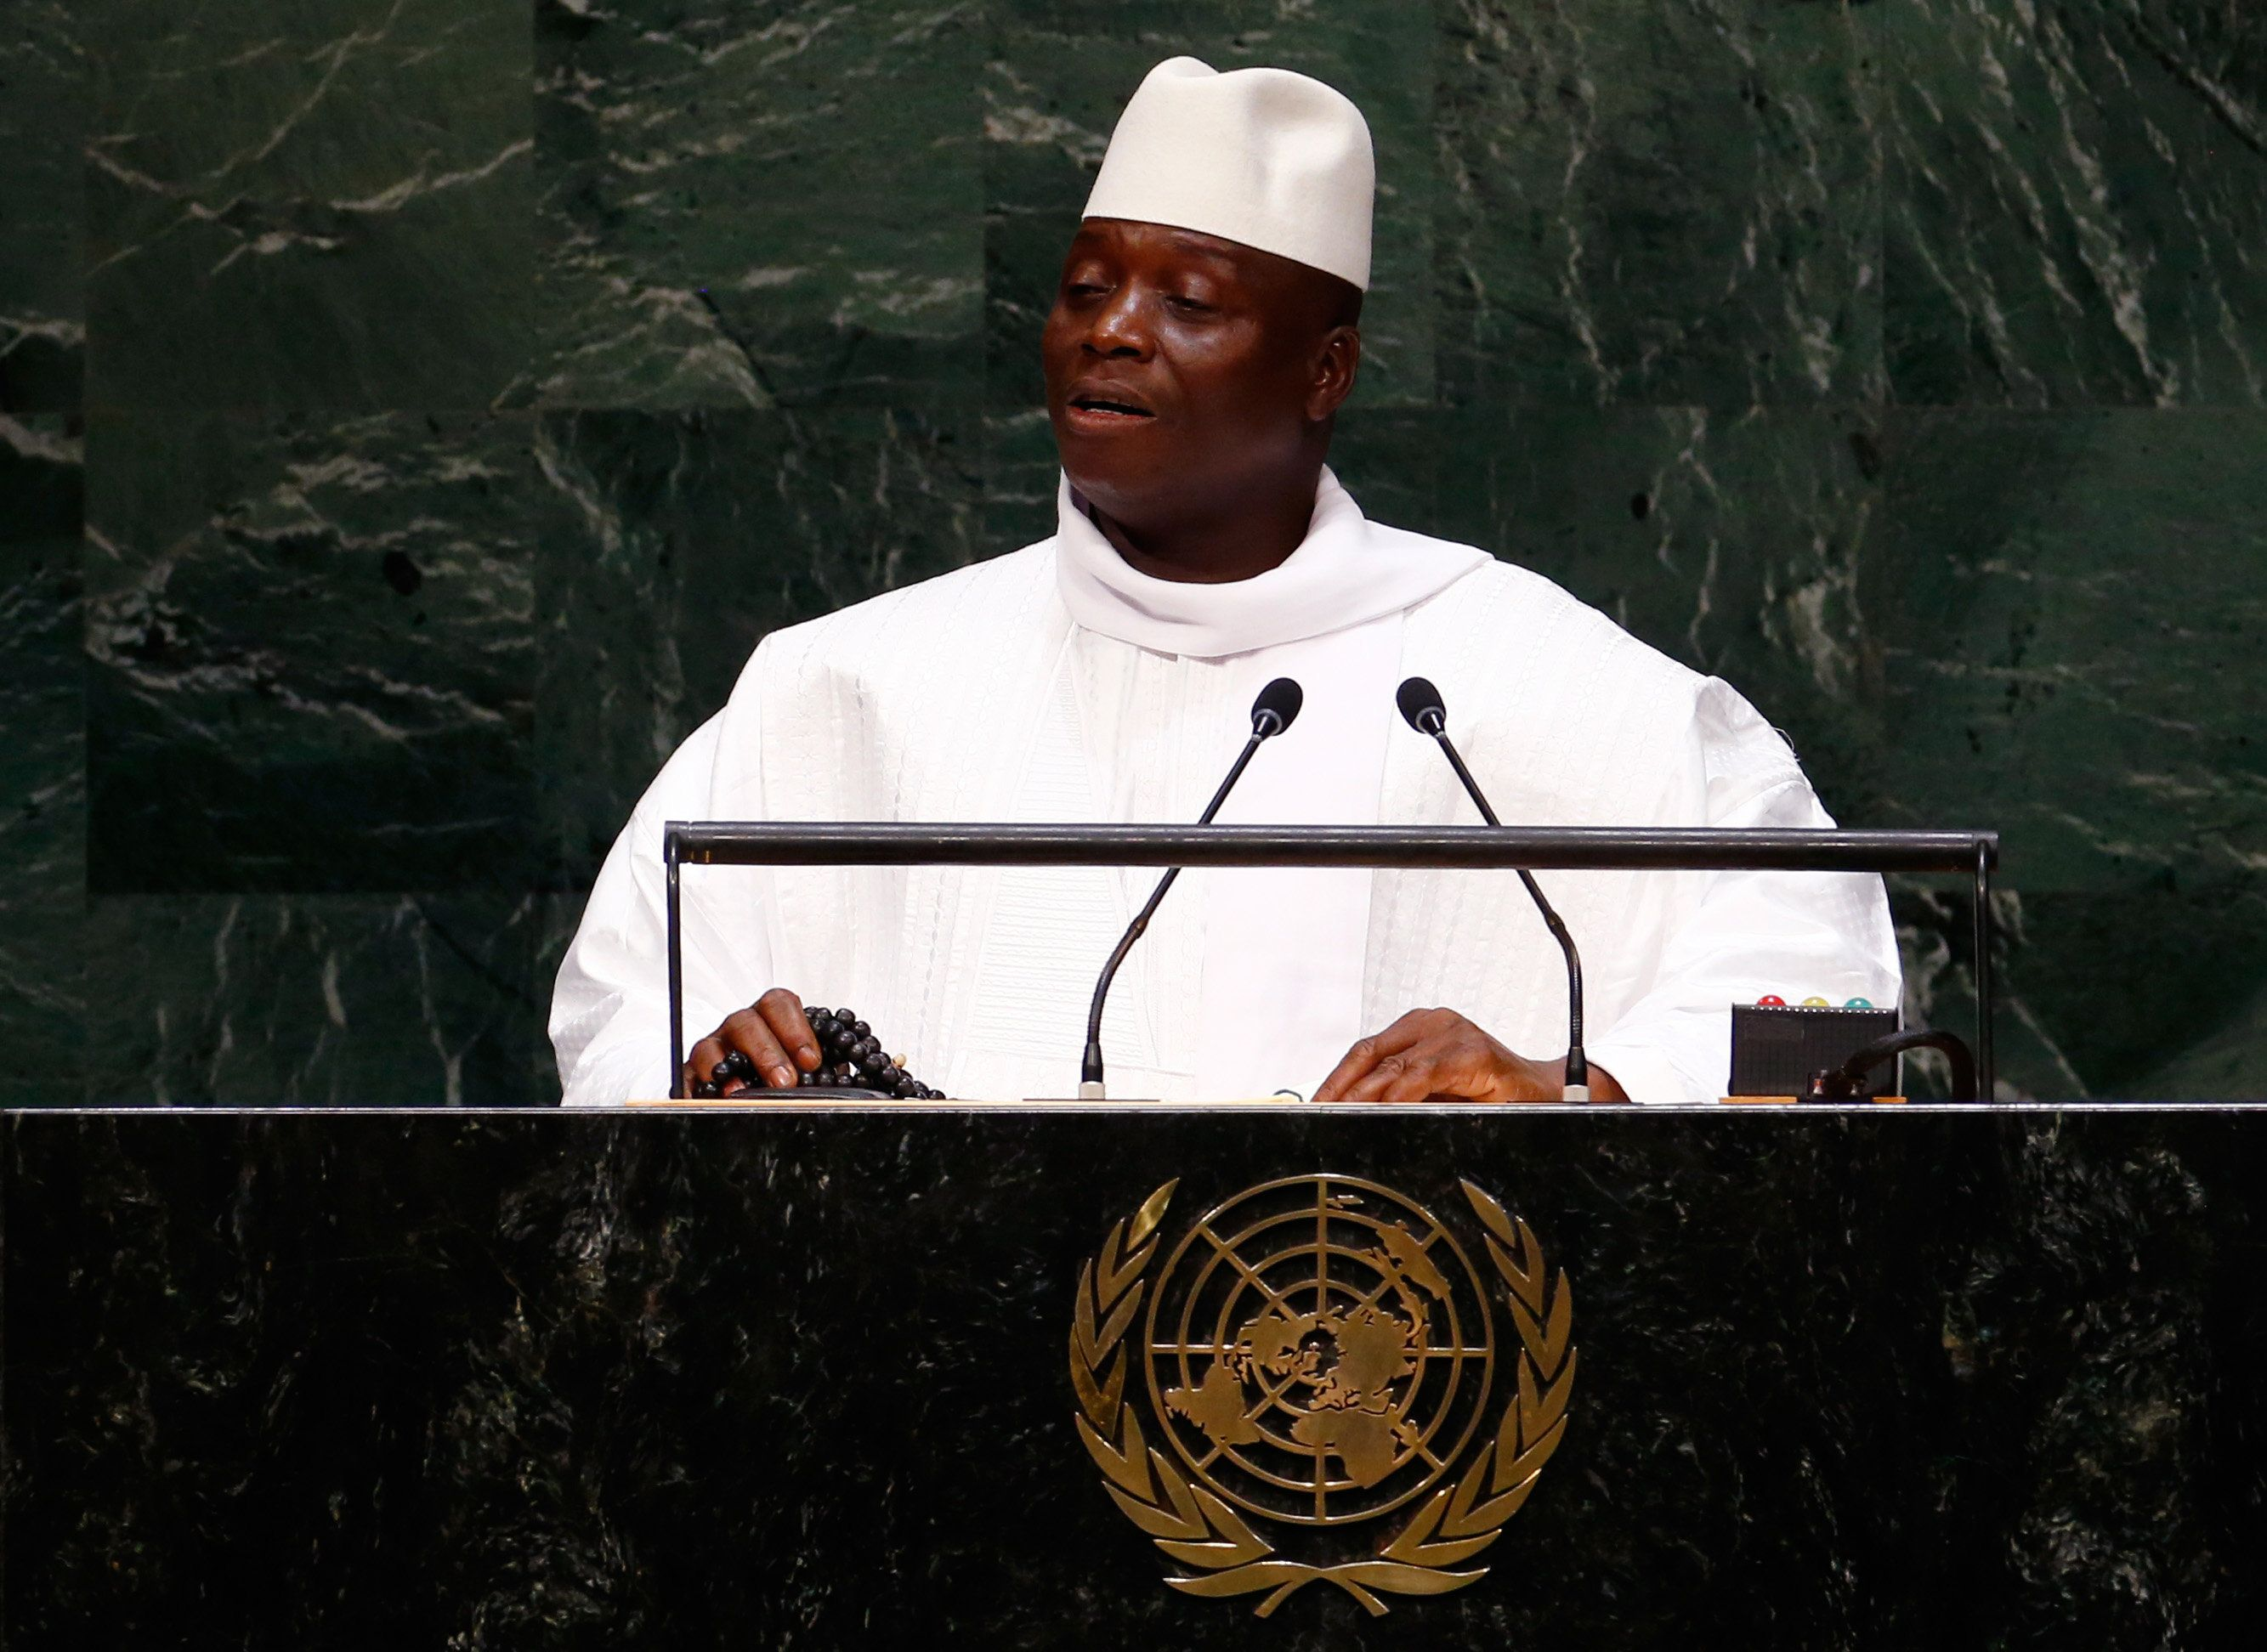 Al Hadji Yahya Jammeh, President of the Republic of the Gambia, addresses the 69th United Nations General Assembly at the U.N. headquarters in New York September 25, 2014.            REUTERS/Lucas Jackson (UNITED STATES  - Tags: POLITICS)